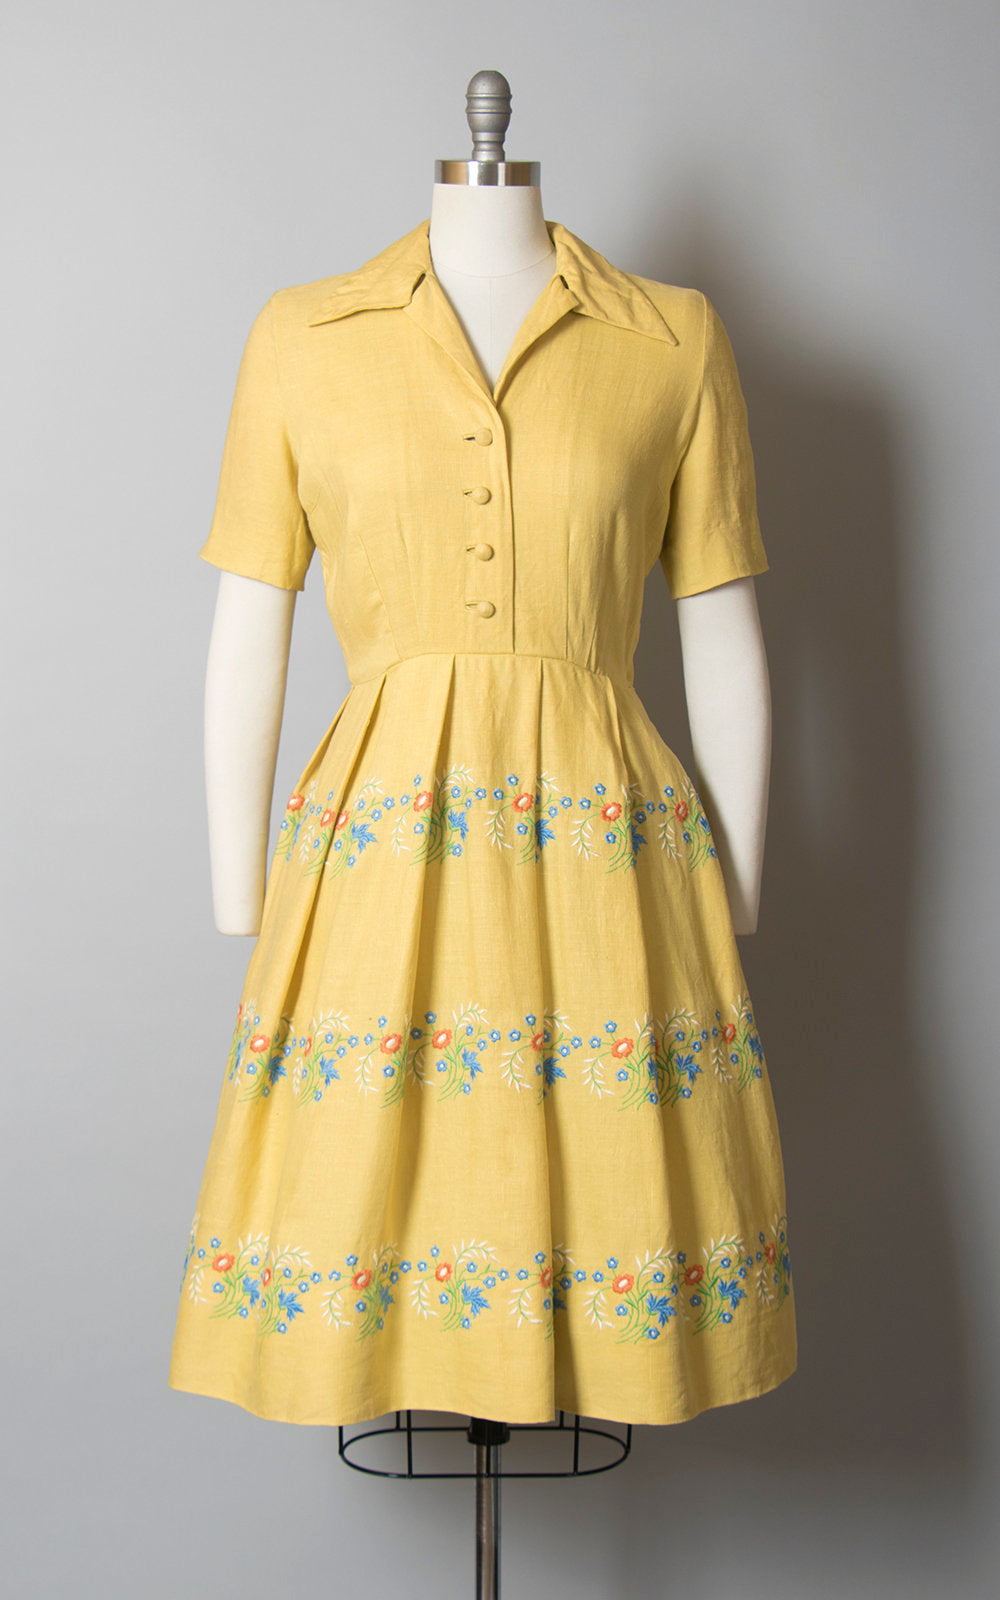 Vintage 1940s Dress | 40s Floral Embroidered Yellow Linen Shirtwaist Pleated Full Skirt Day Dress (small)